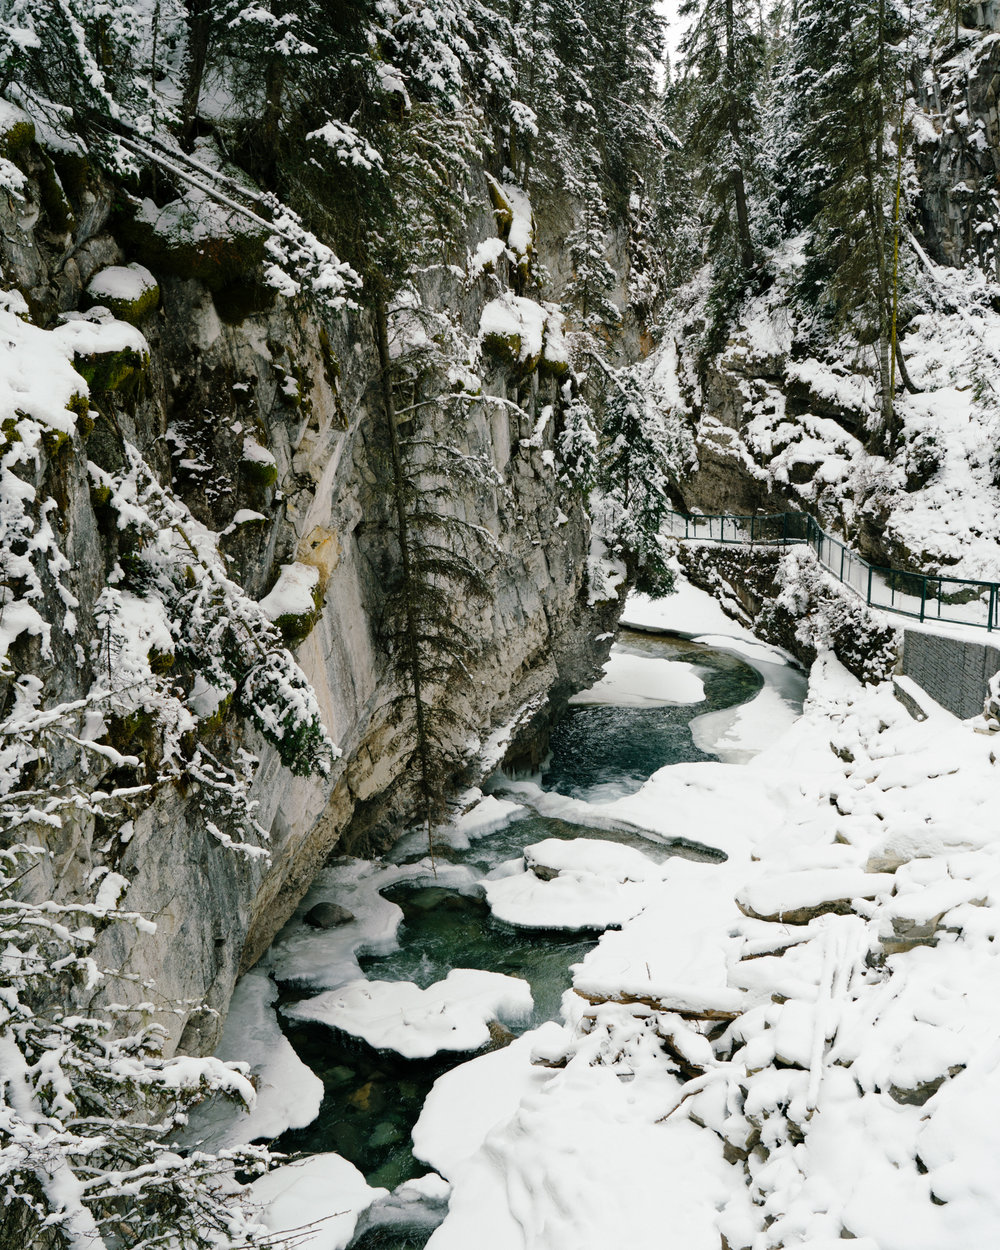 Things to do in Banff: Johnston Canyon Icewalk